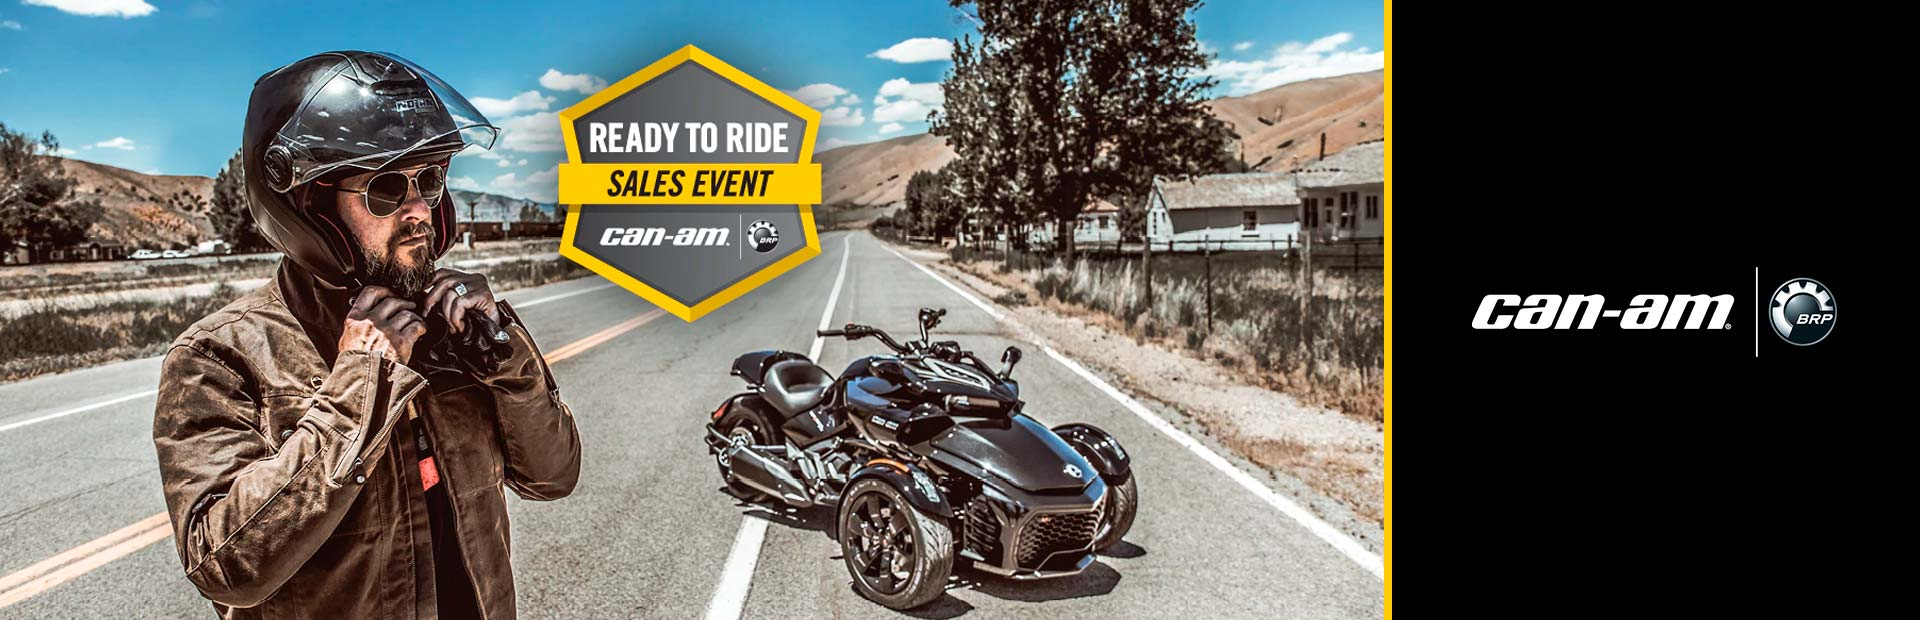 Ready To Ride Sales Event - Spyder